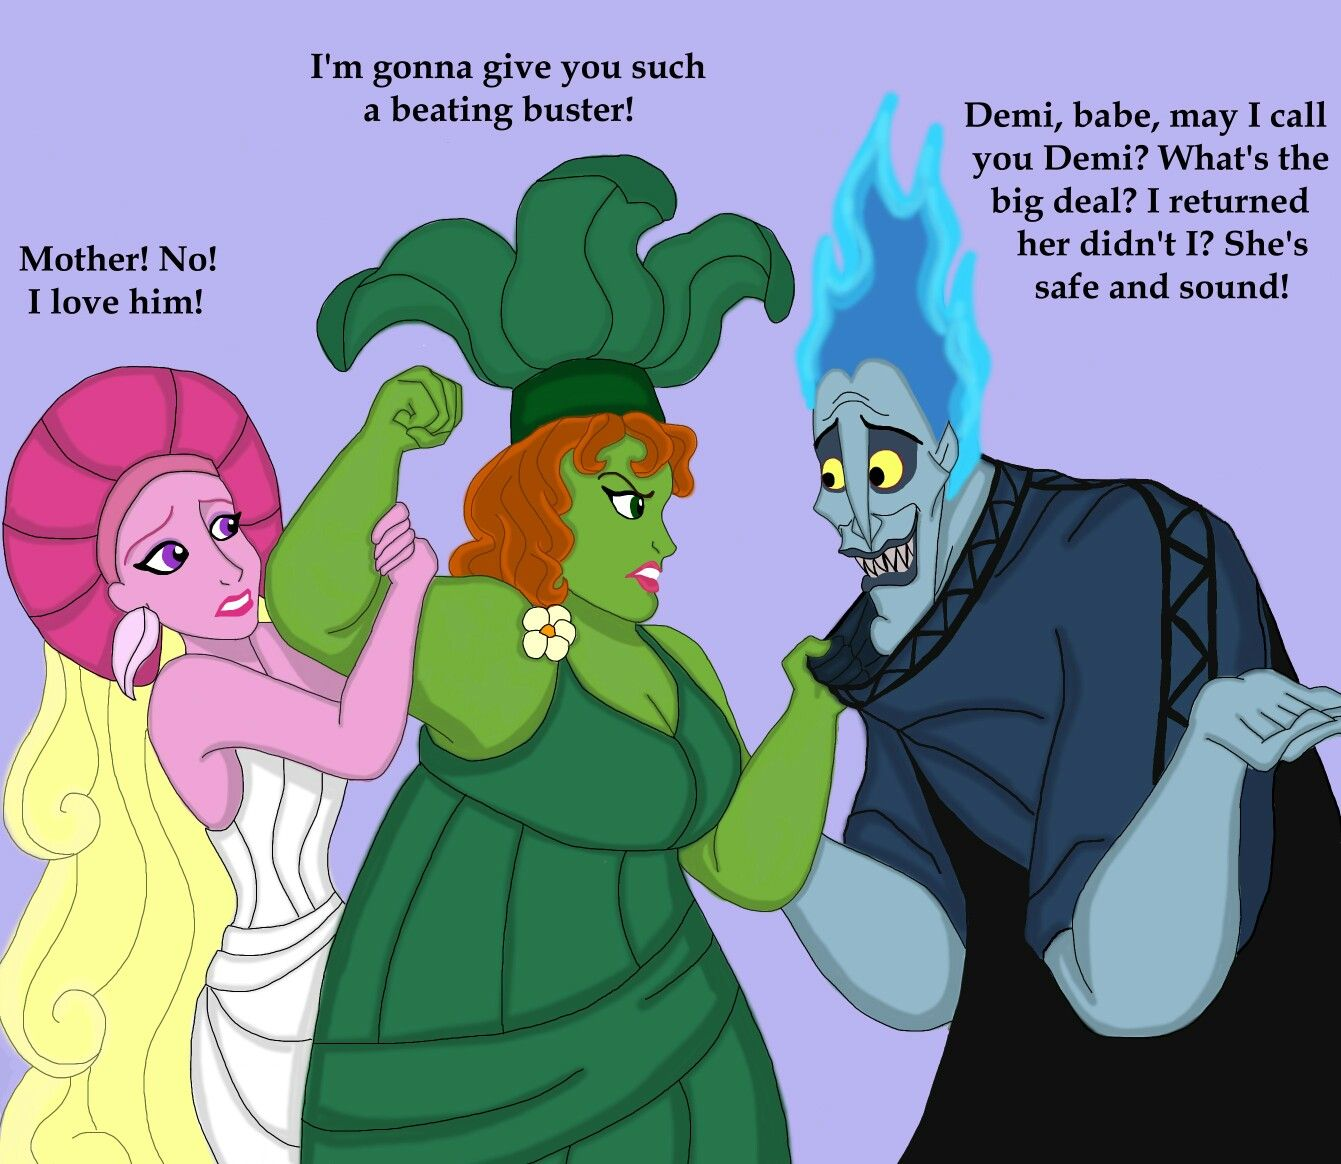 if they were from the animated movie of hercules